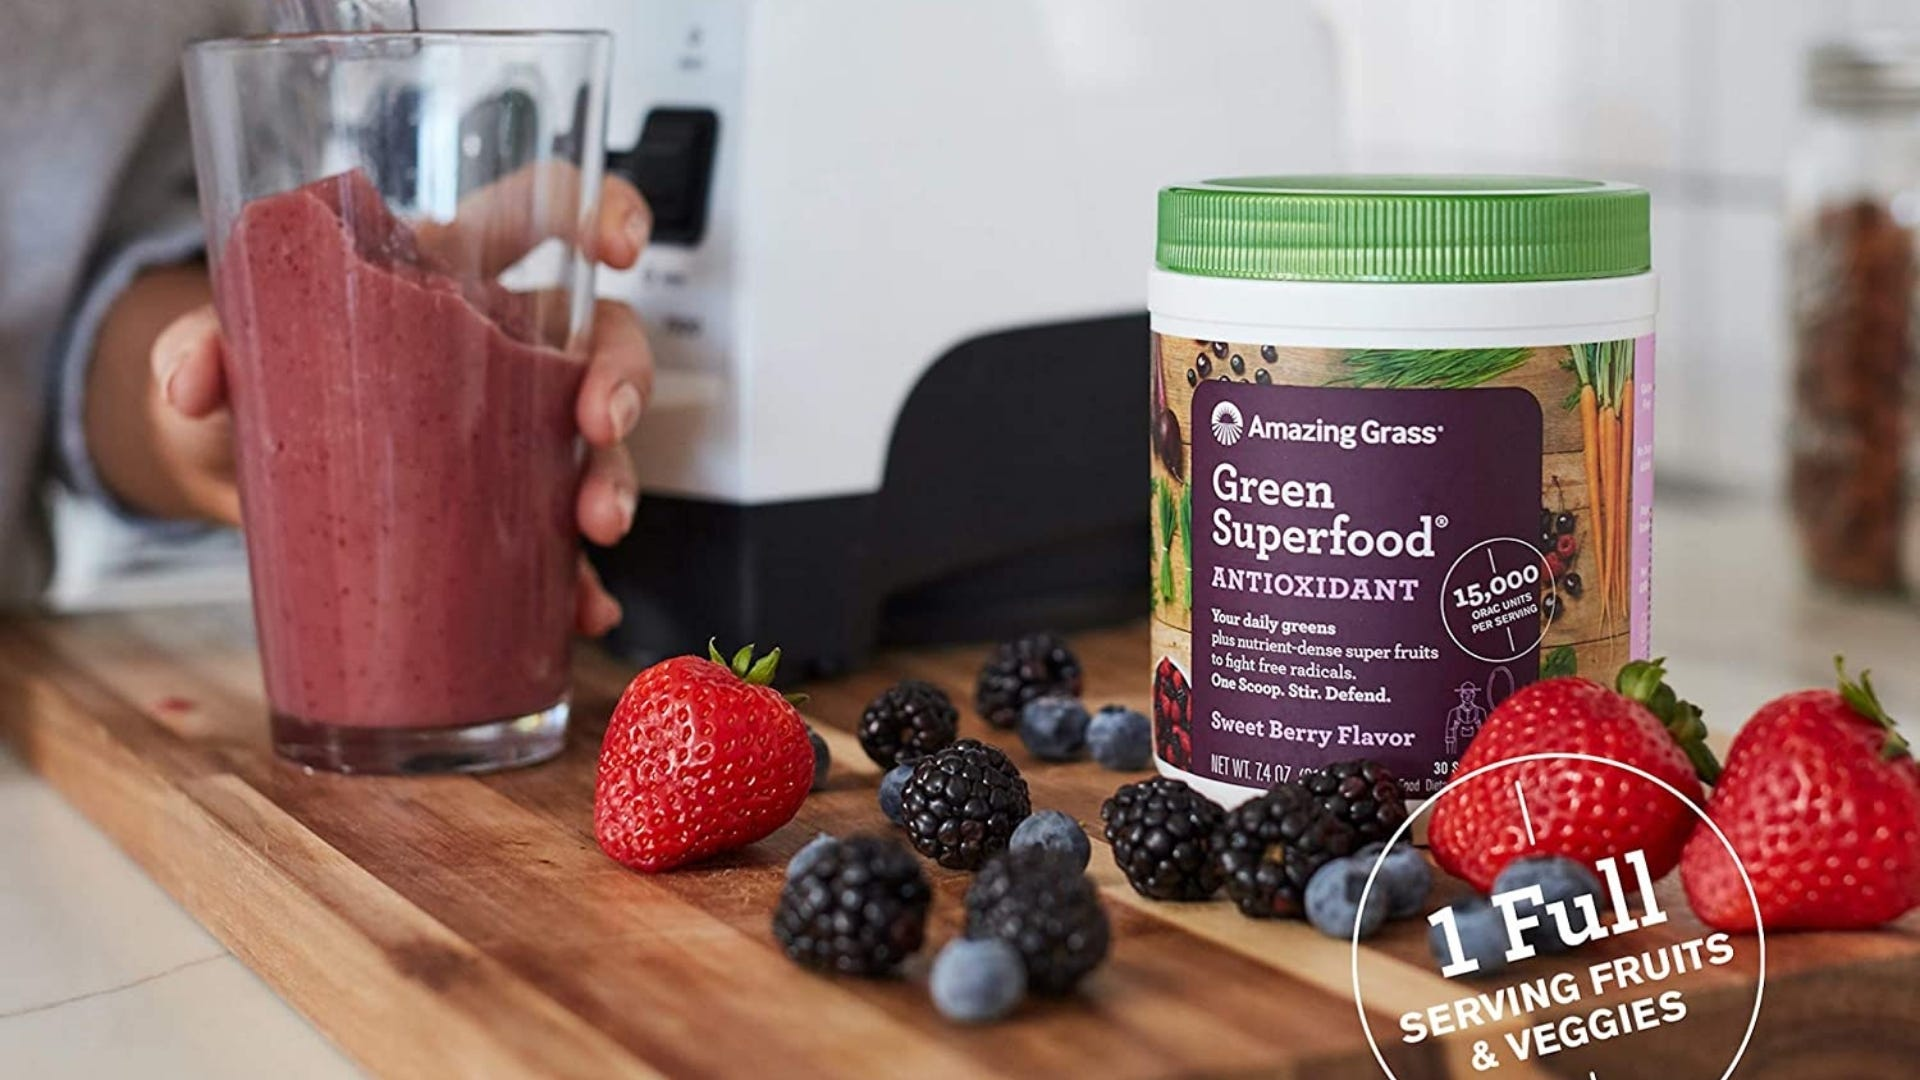 Someone setting a red smoothie on a counter next to a container of Amazing Grass, surrounded by raspberries, blueberries, and strawberries.